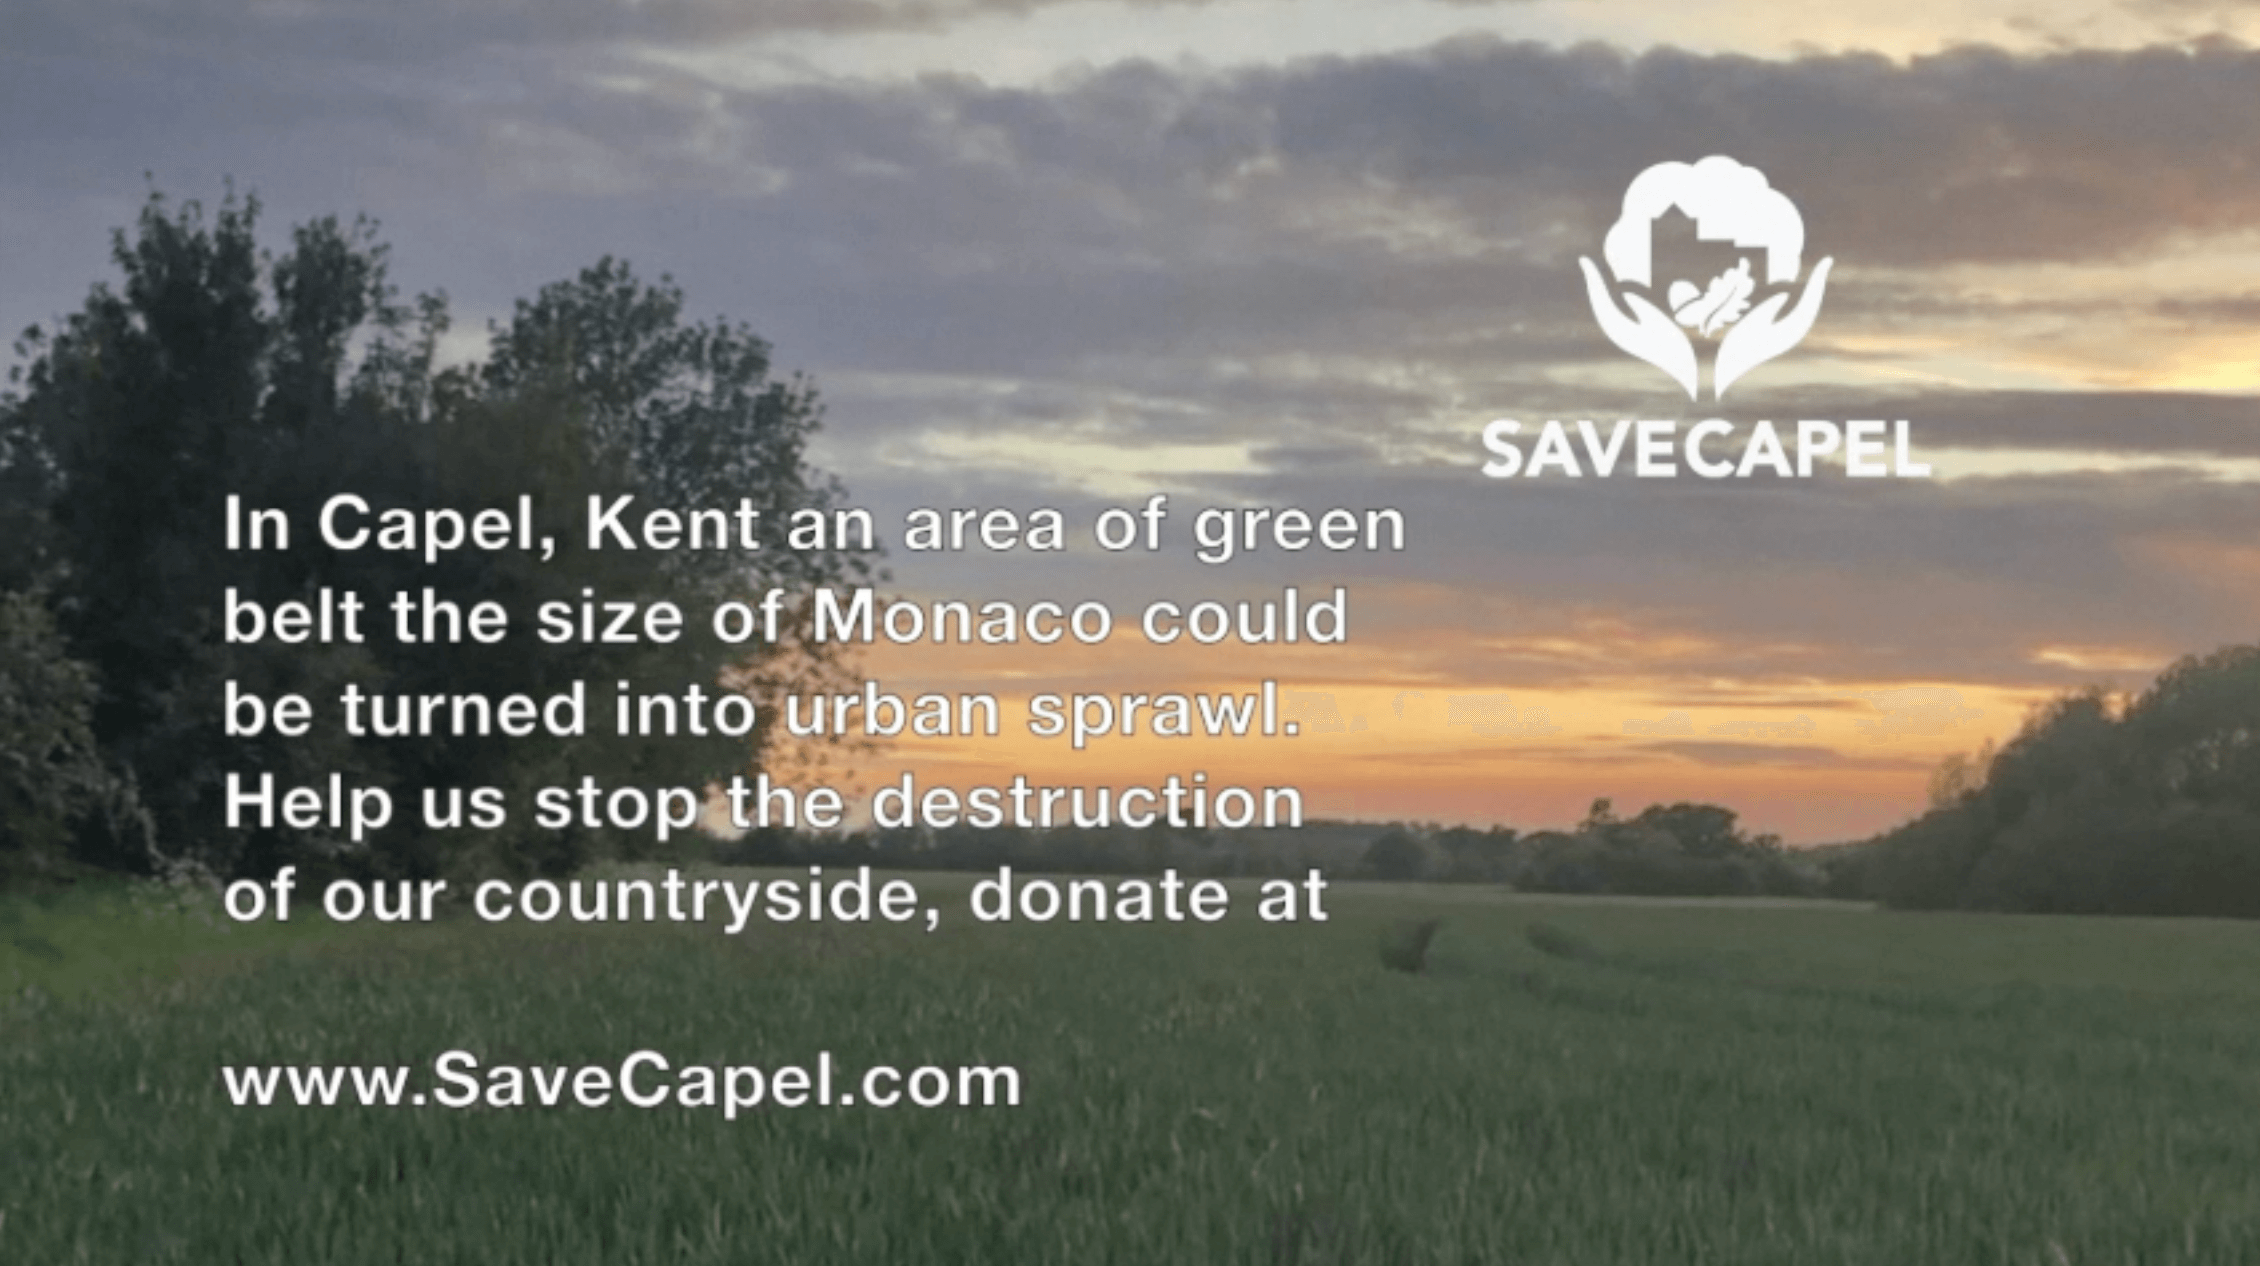 Sing along with Save Capel – Passport to Monaco